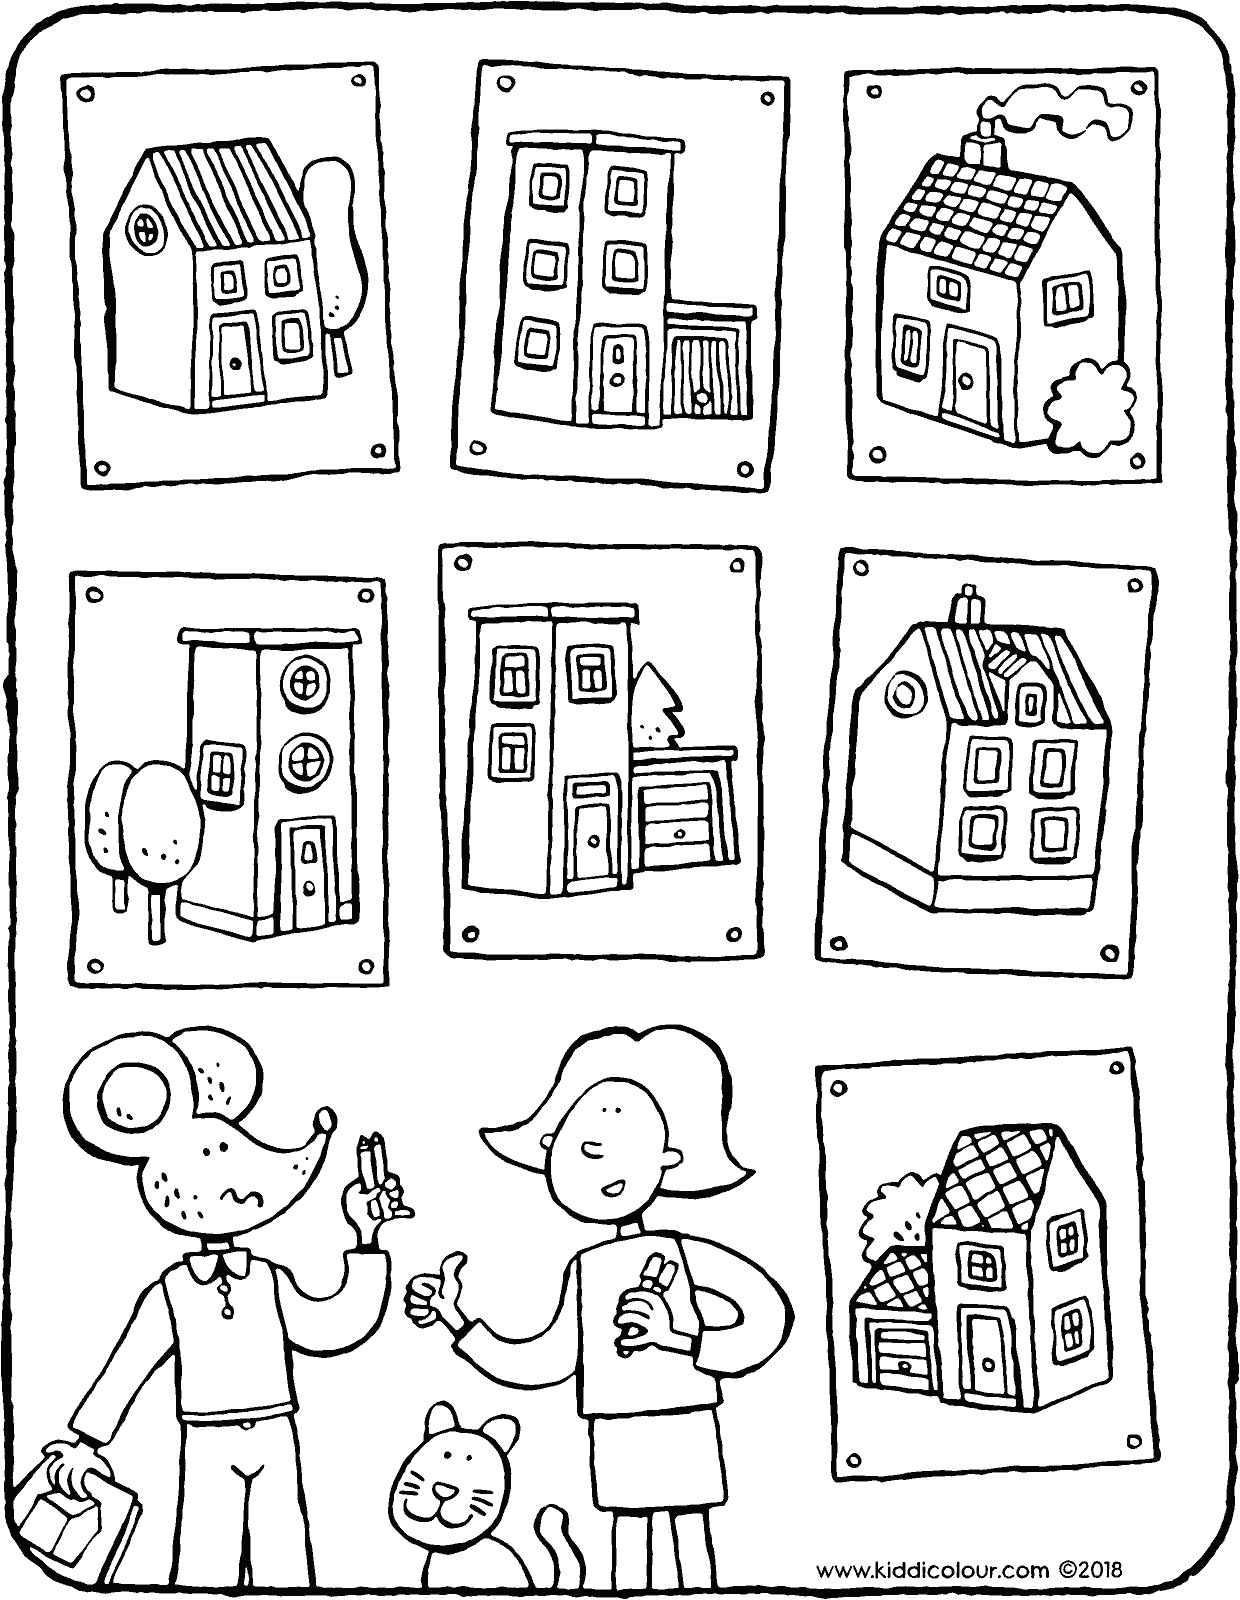 Find The Right Houses